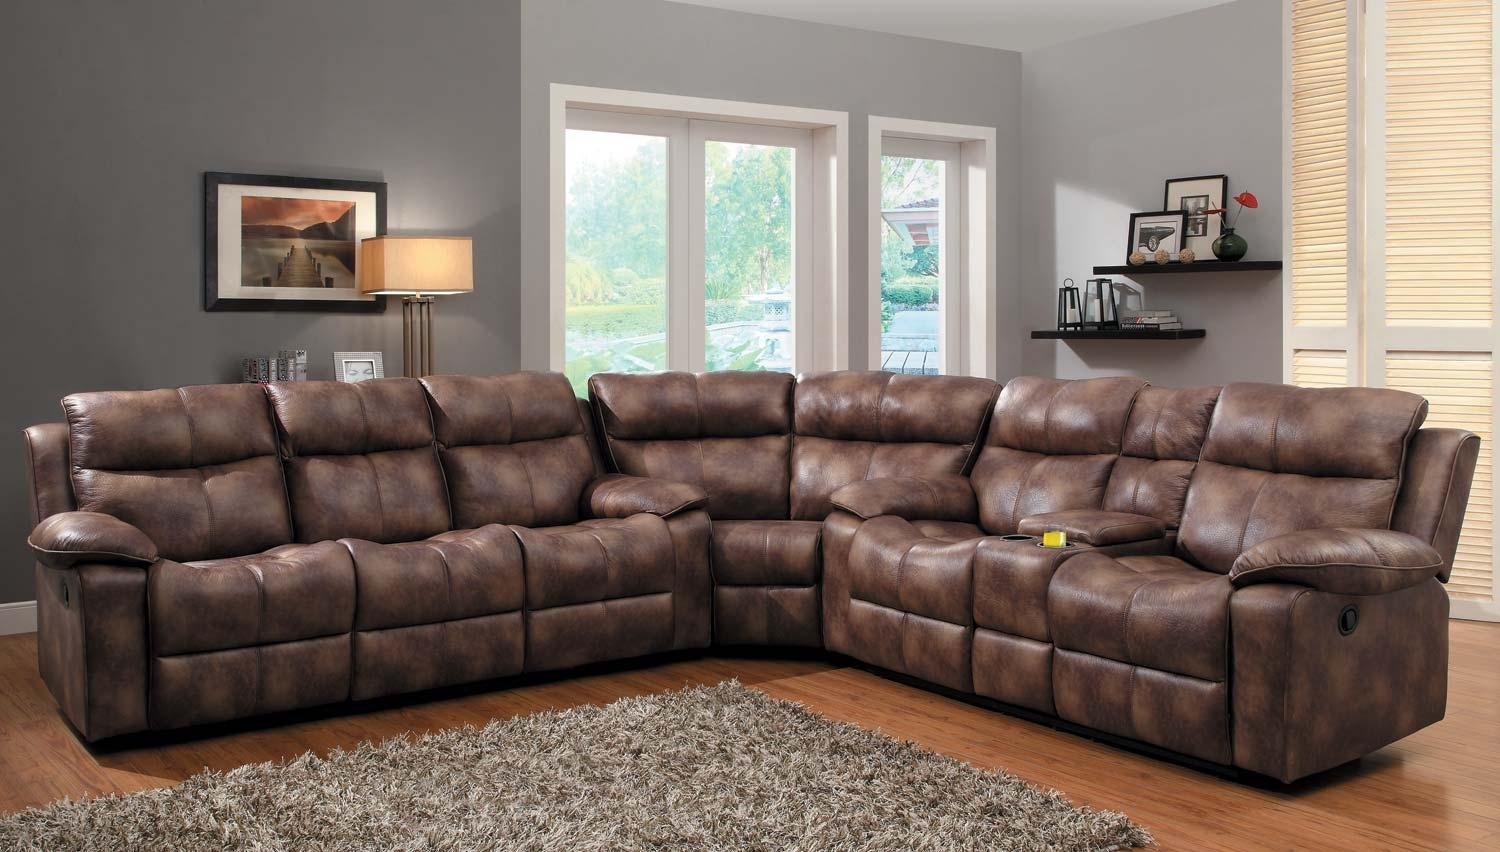 Sectional Sofa Sets Large Small Couches With Recliner Decor 4 Within Sectional Sofas That Turn Into Beds (Image 6 of 10)